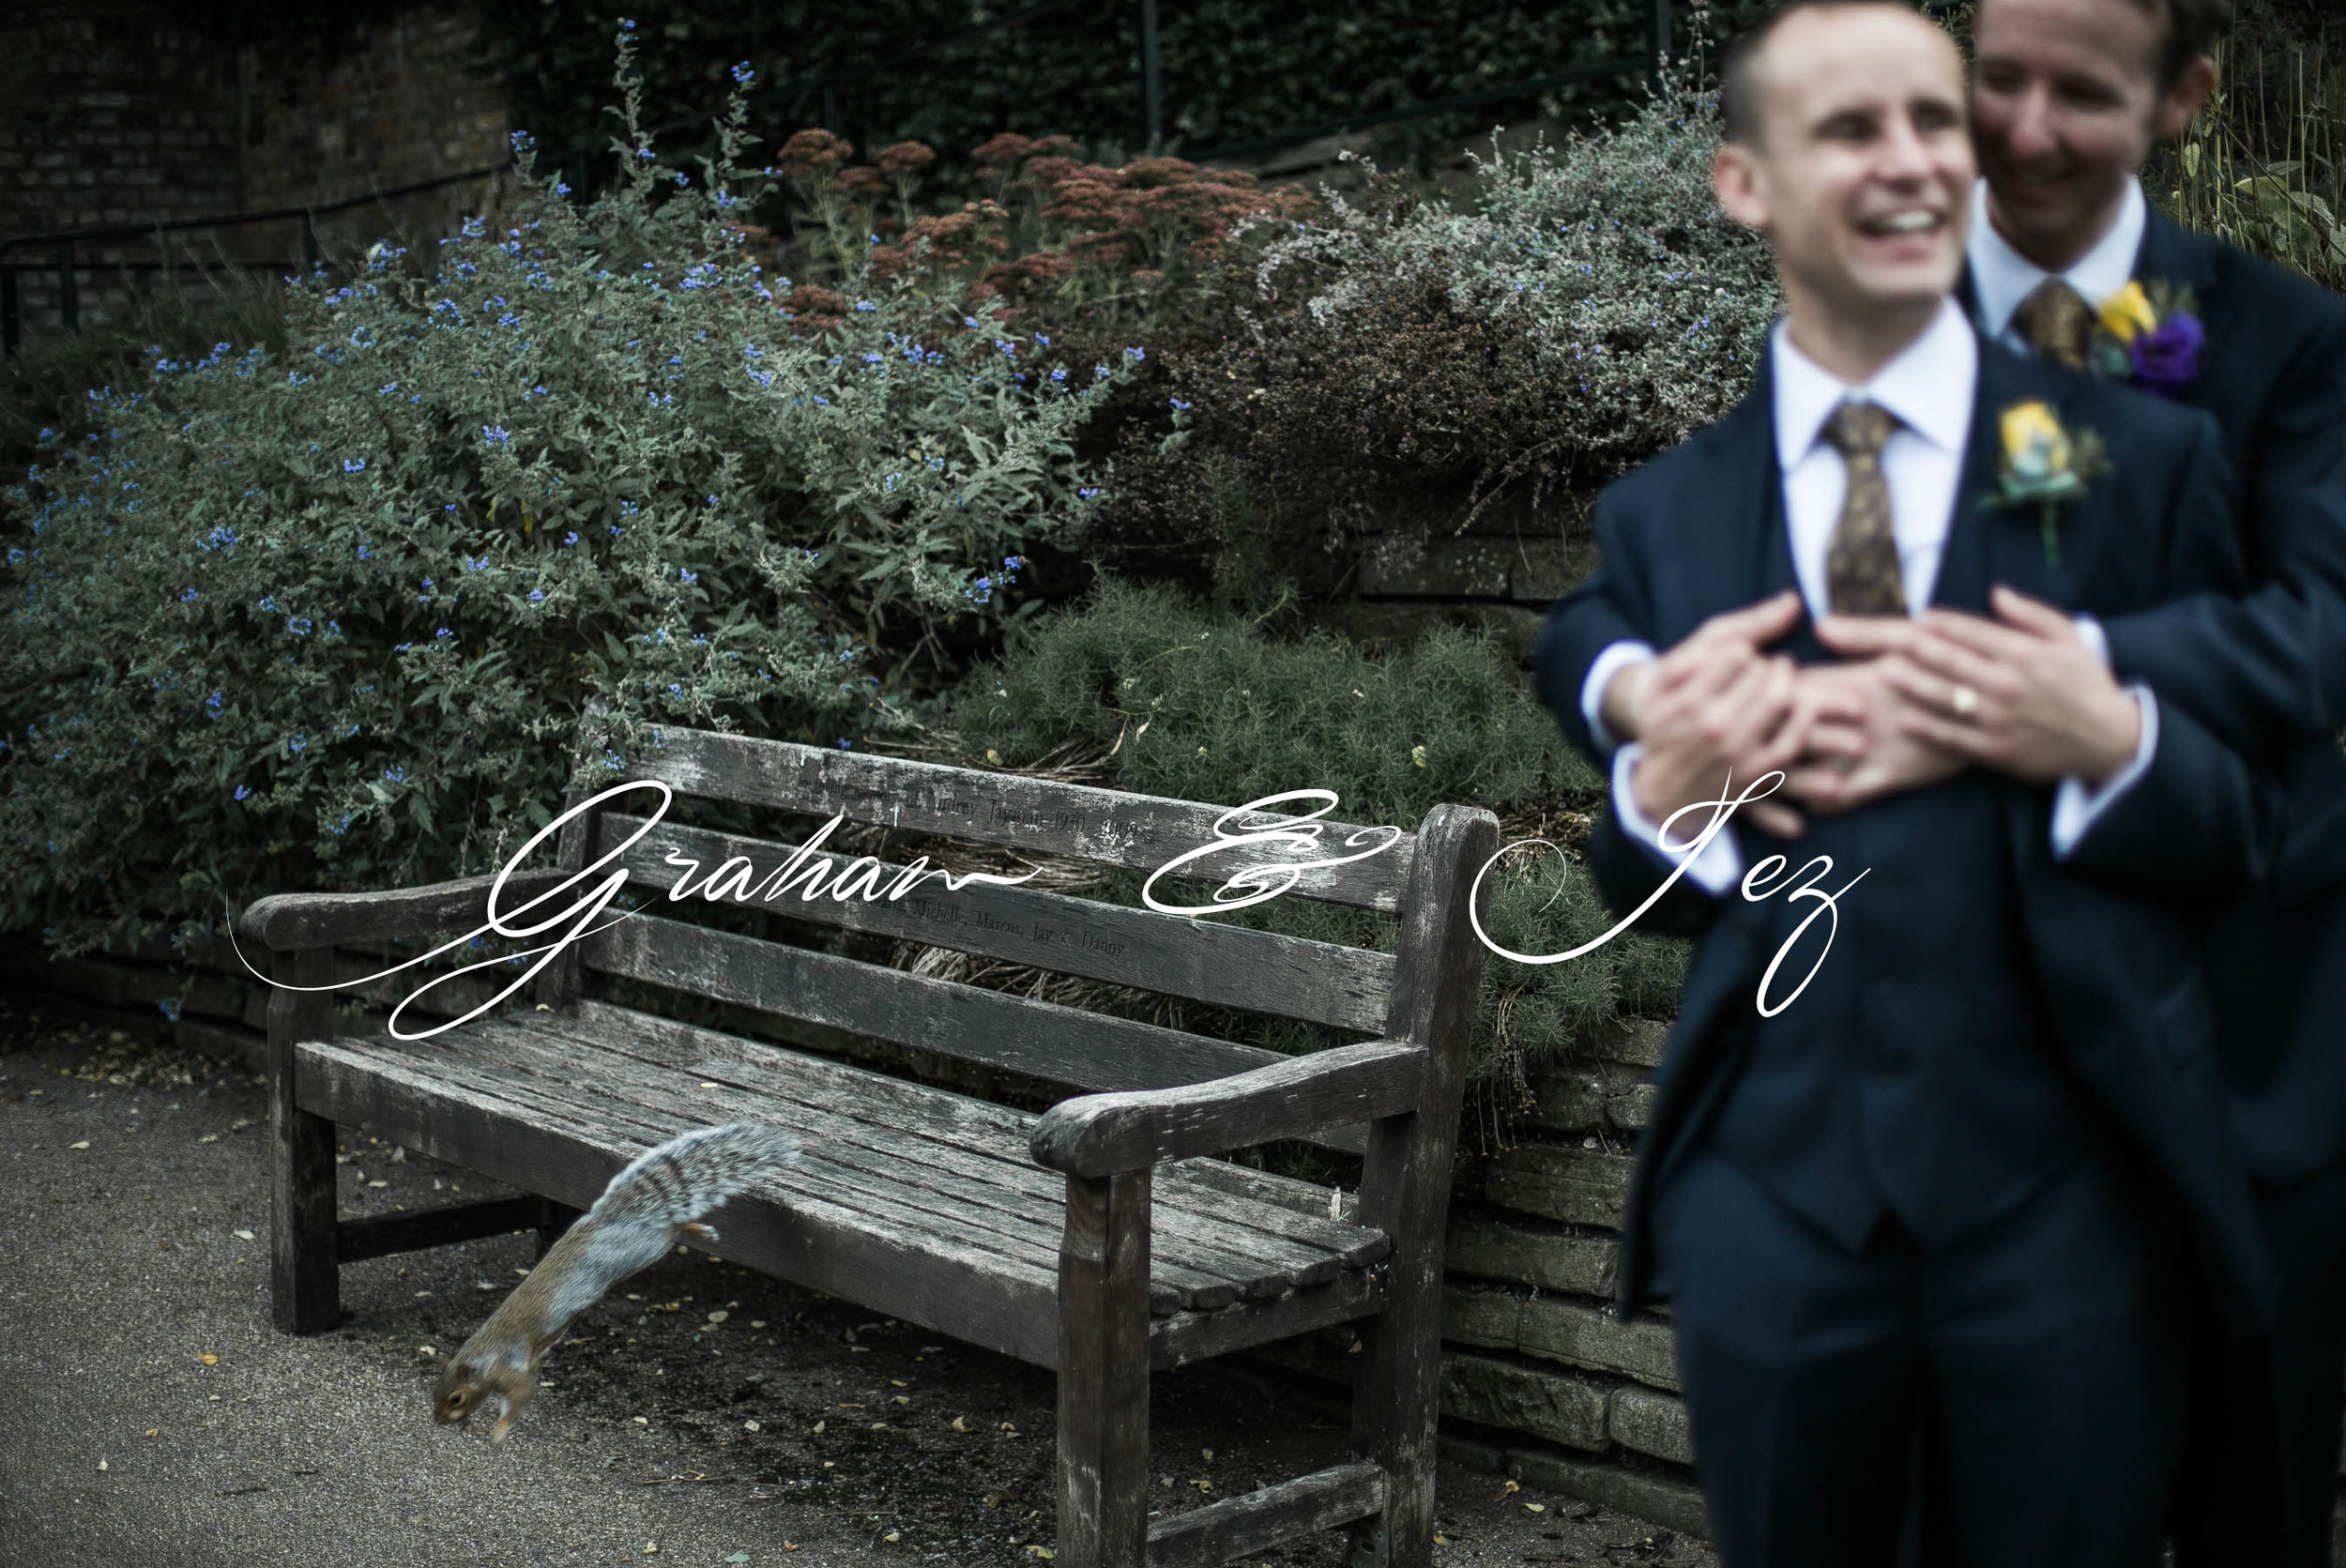 London_wedding_photographer2.jpg